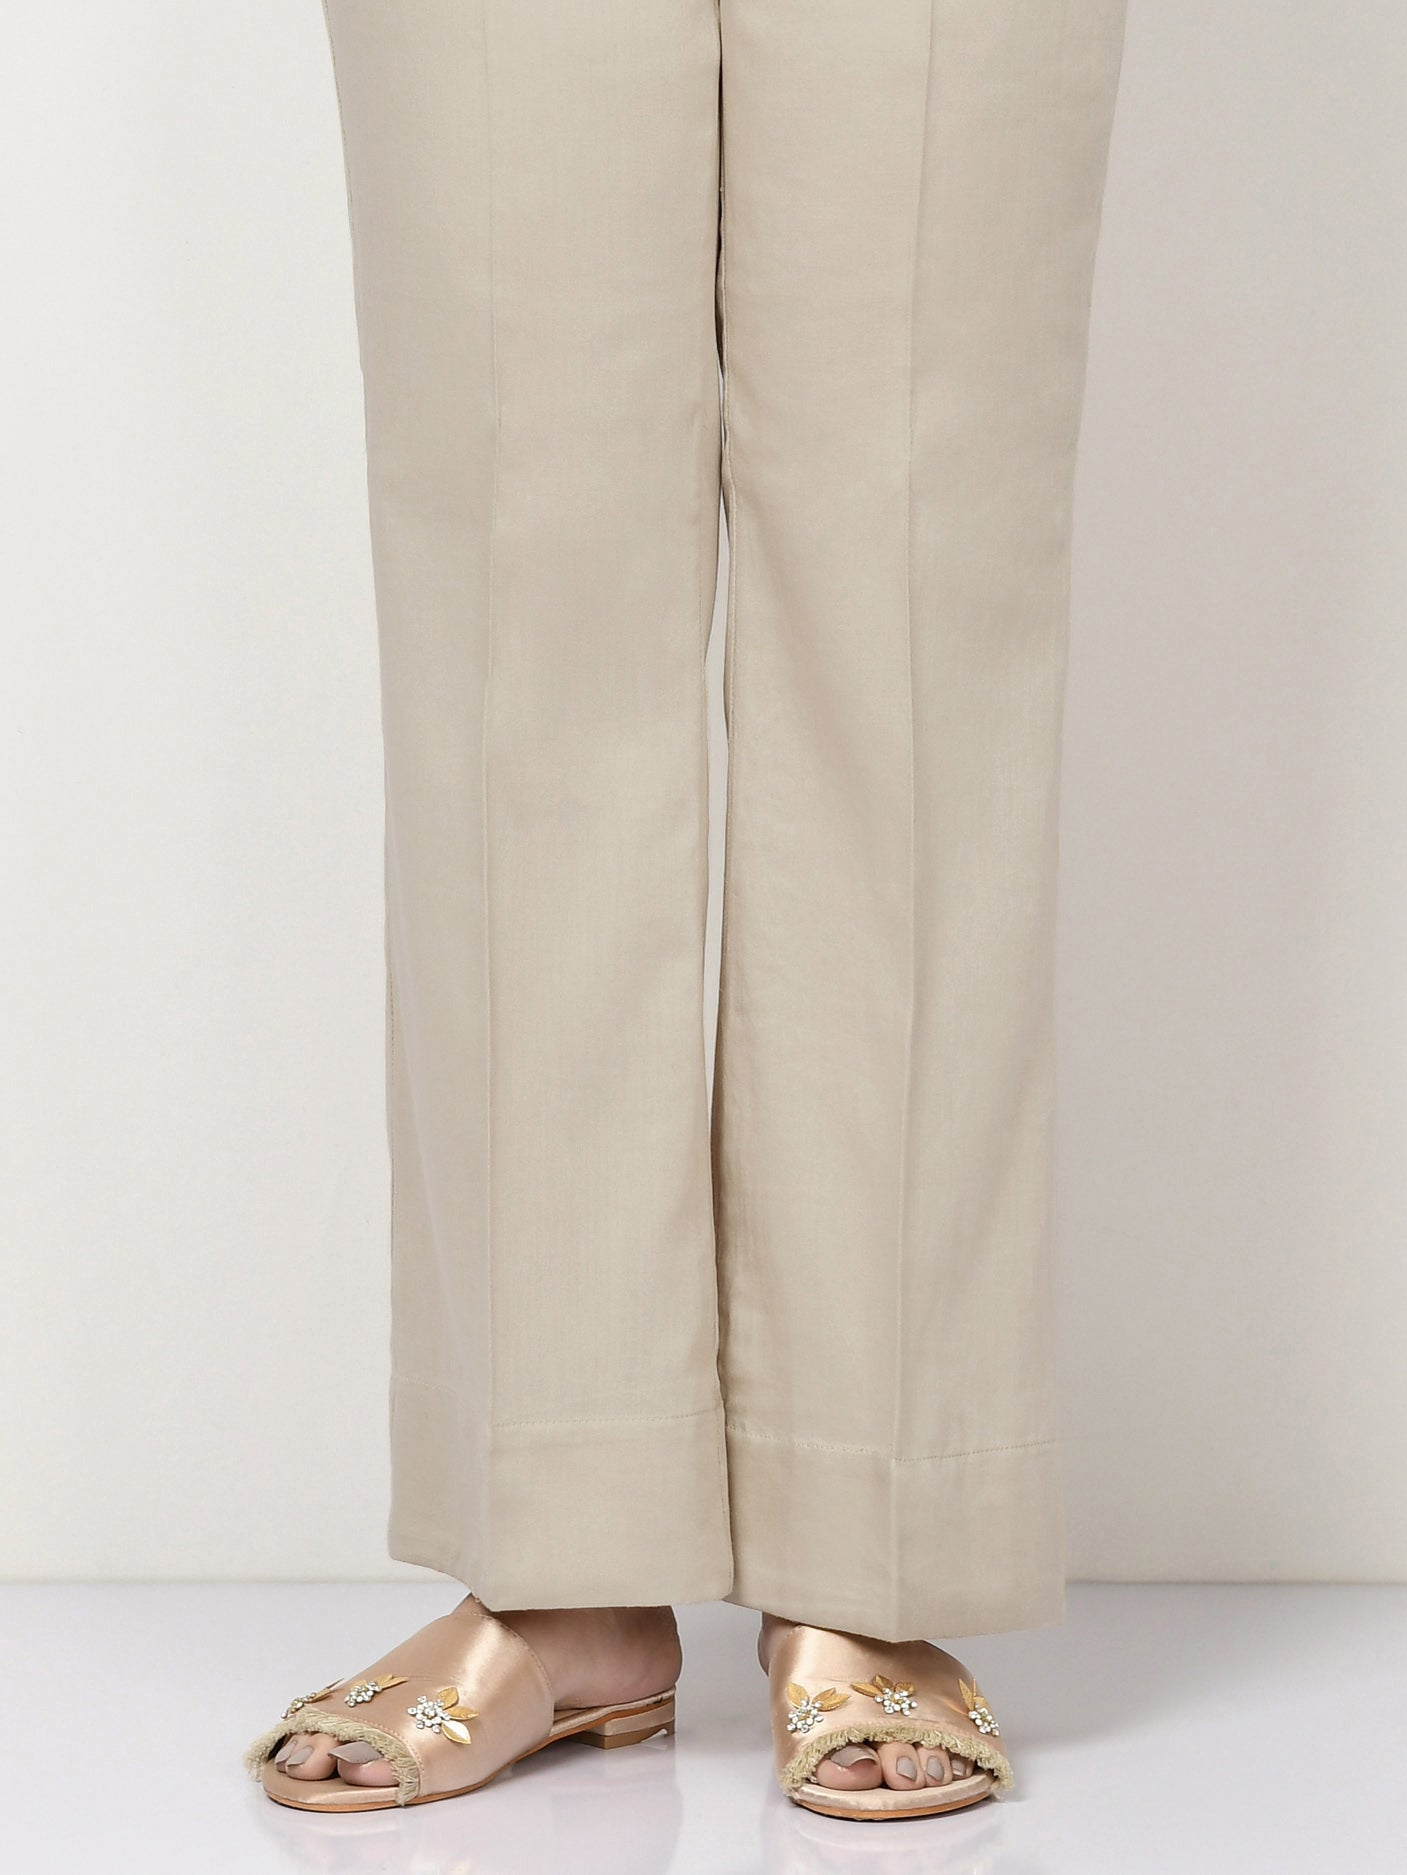 Unstitched Cambric Trouser - Sand Grey